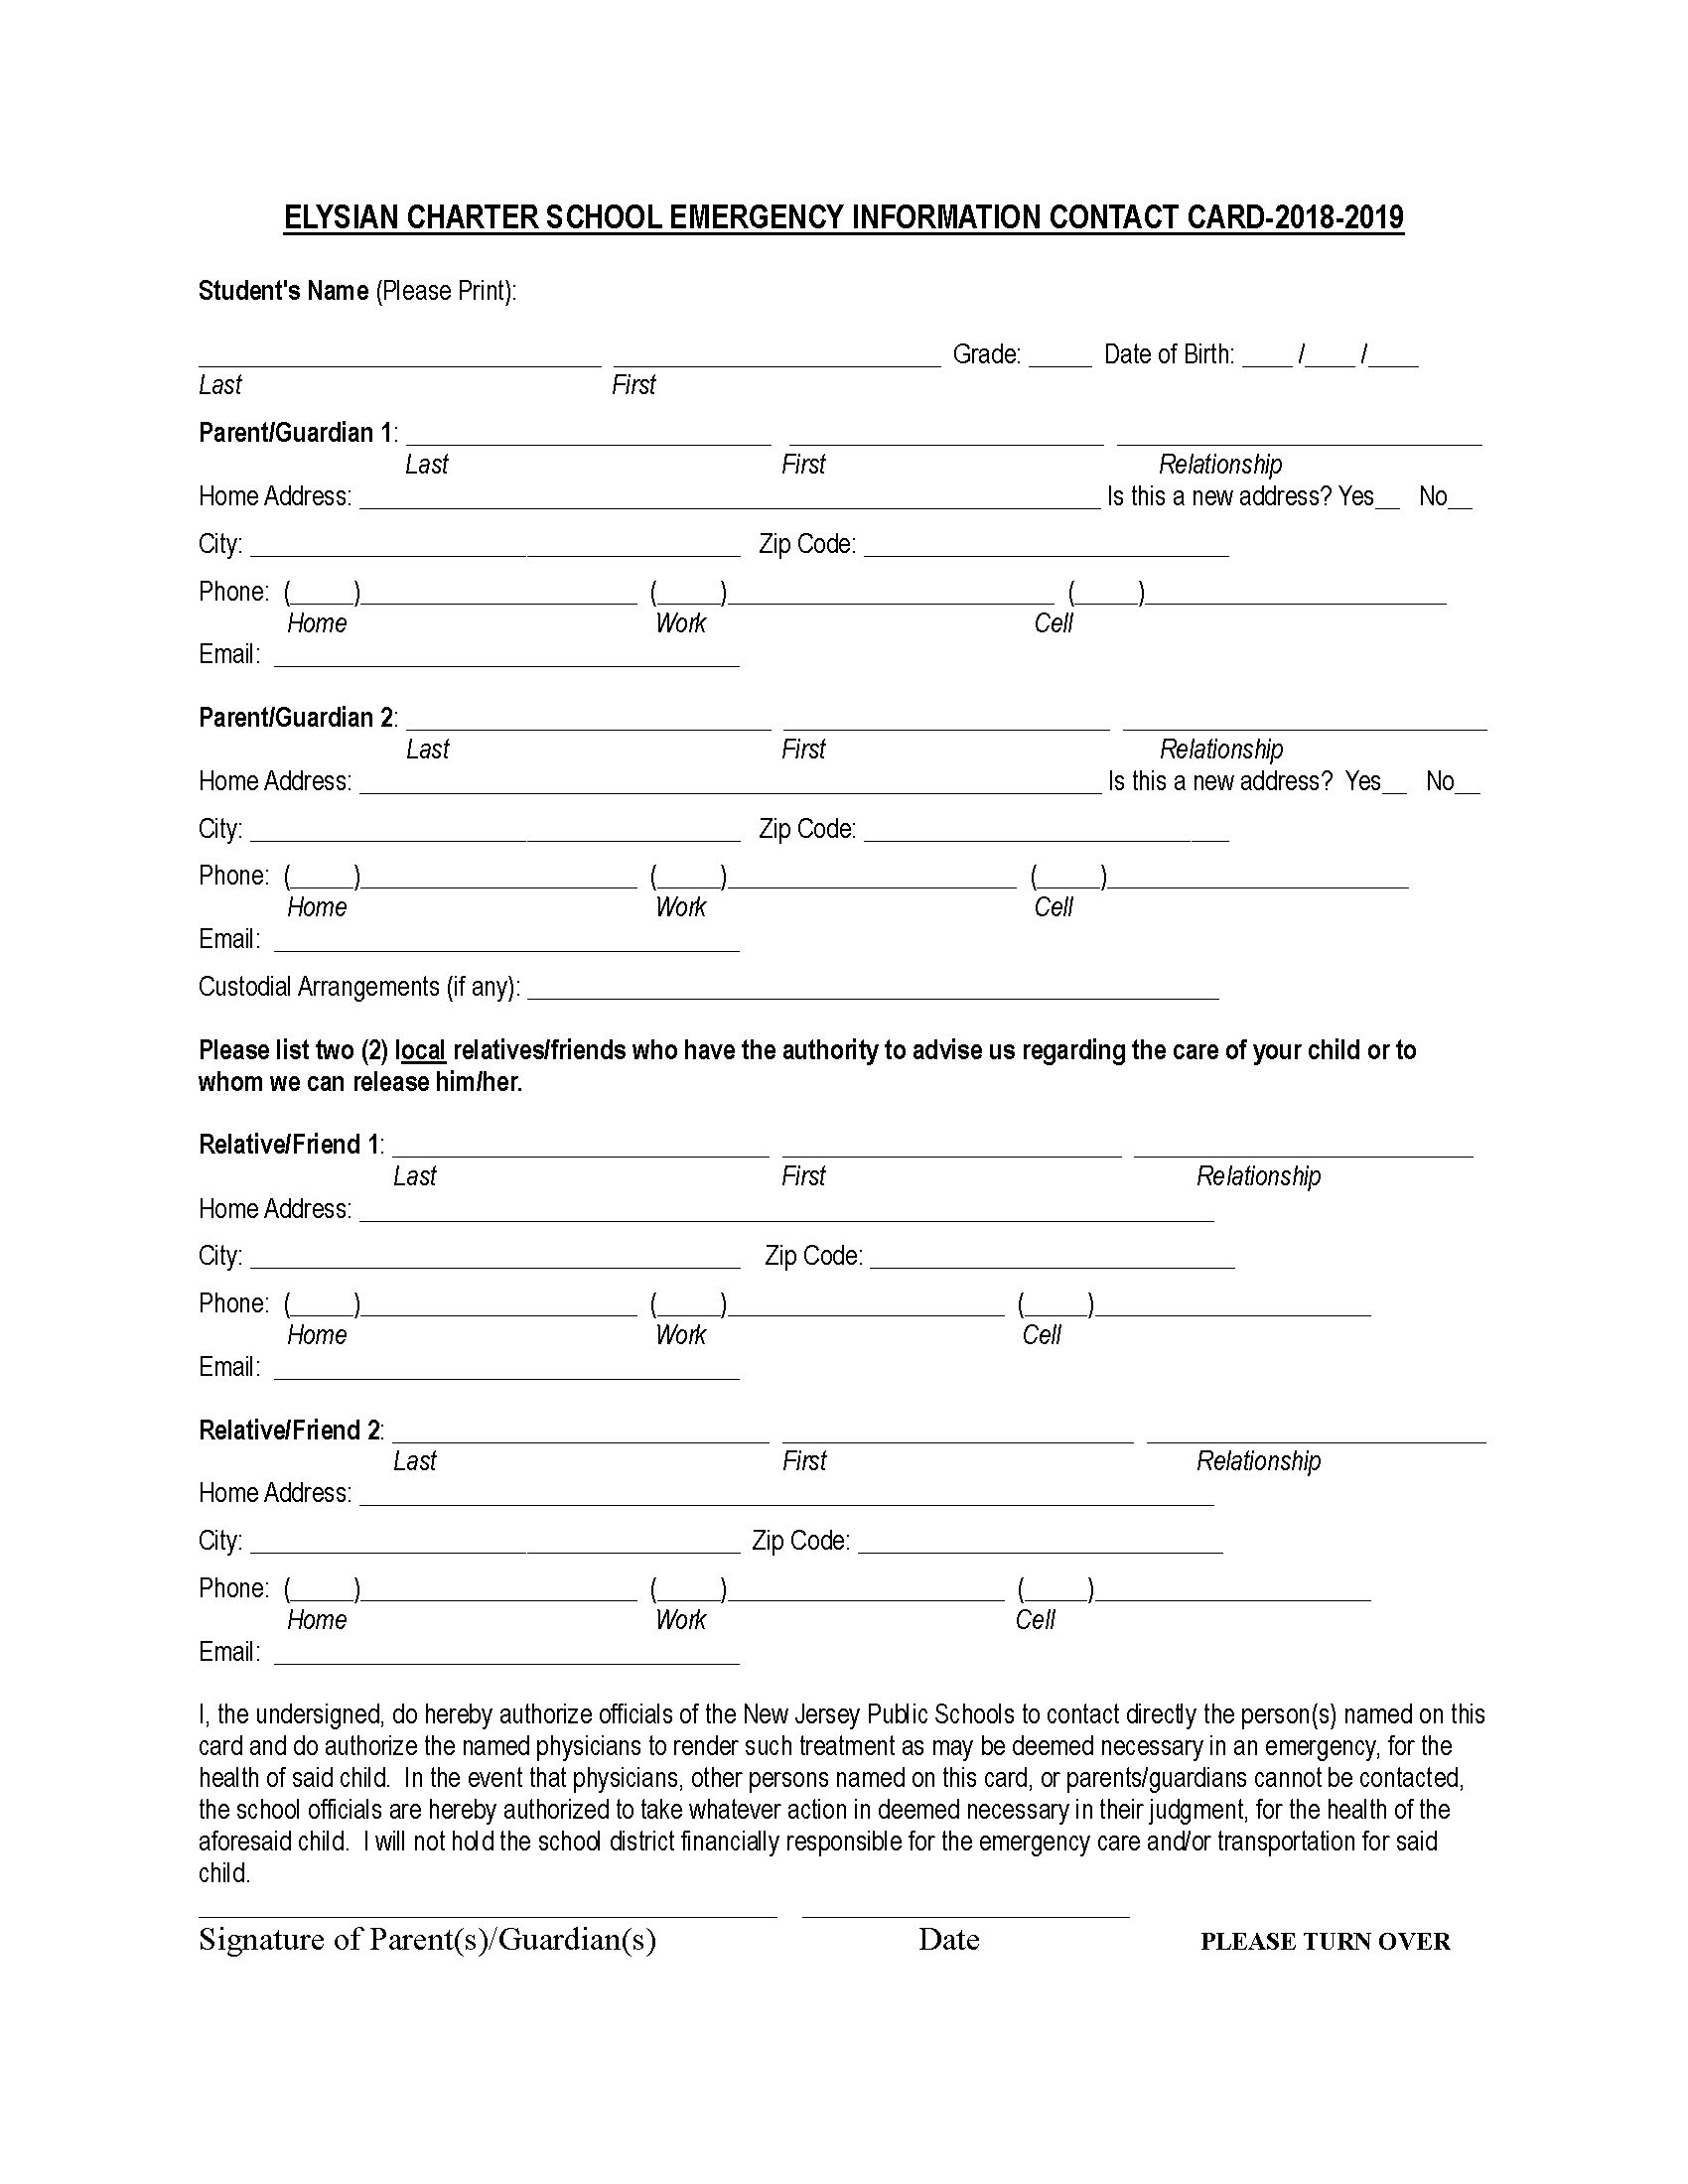 Contact dismissal form